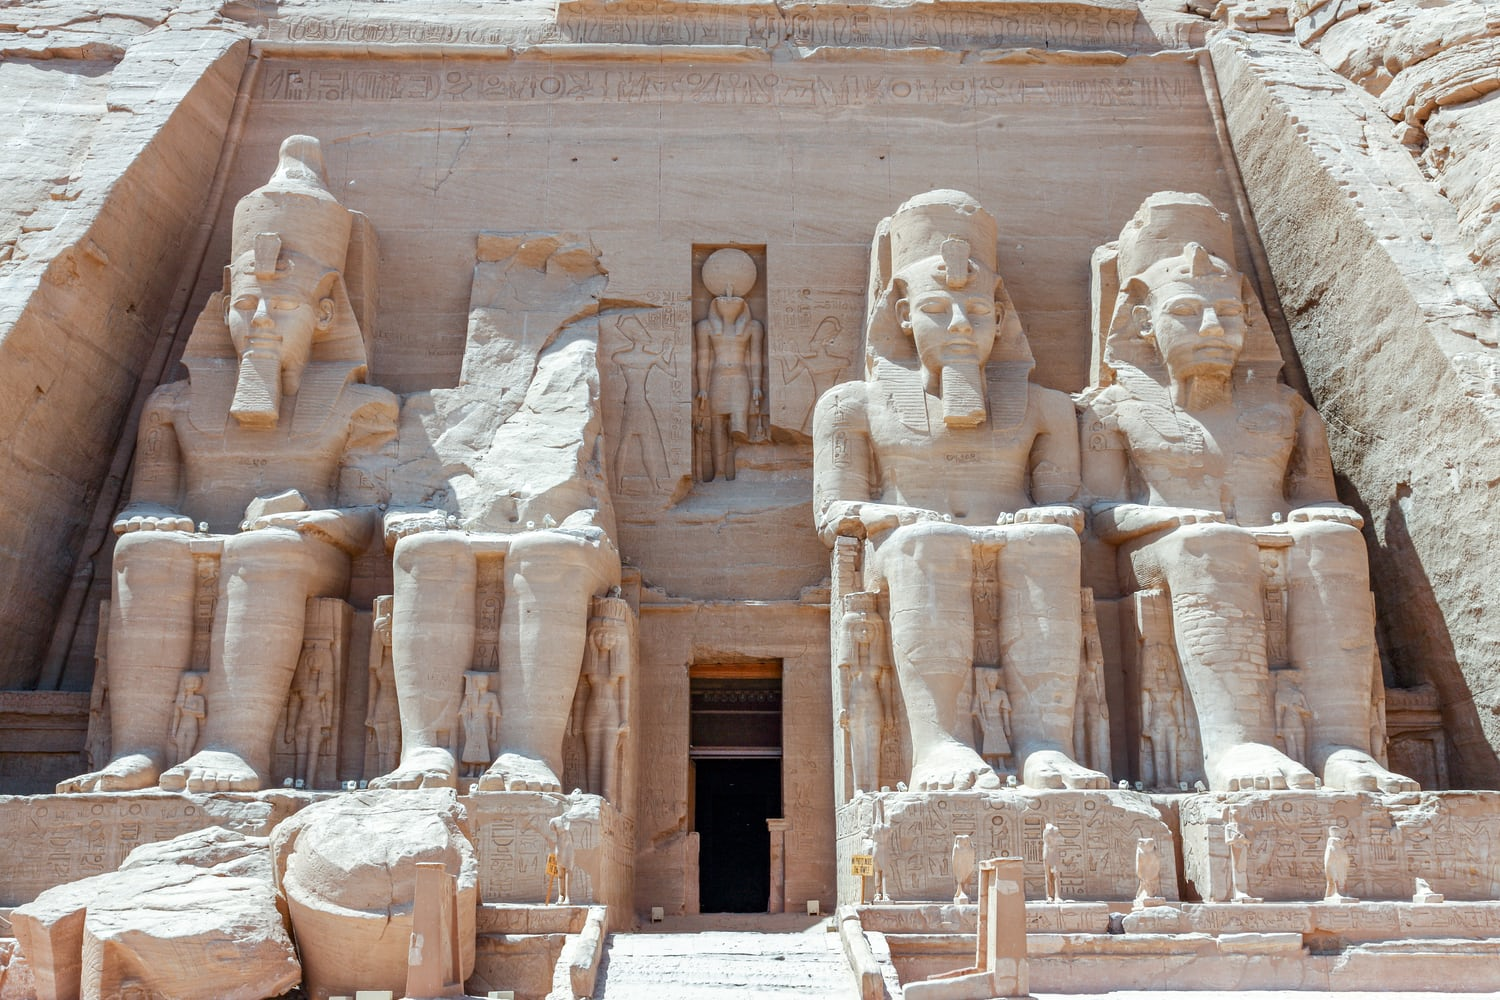 Abu Simbel Temple, Egypt | AussieActive on Unsplash